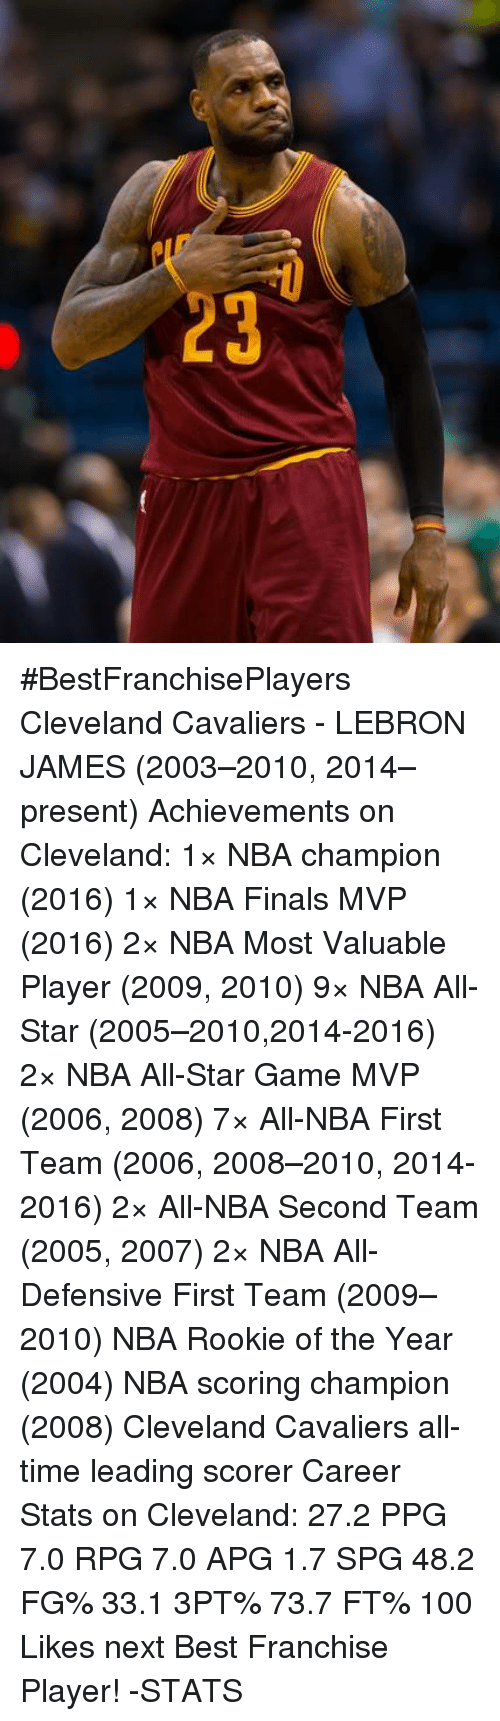 Lebron James 10x Mvp